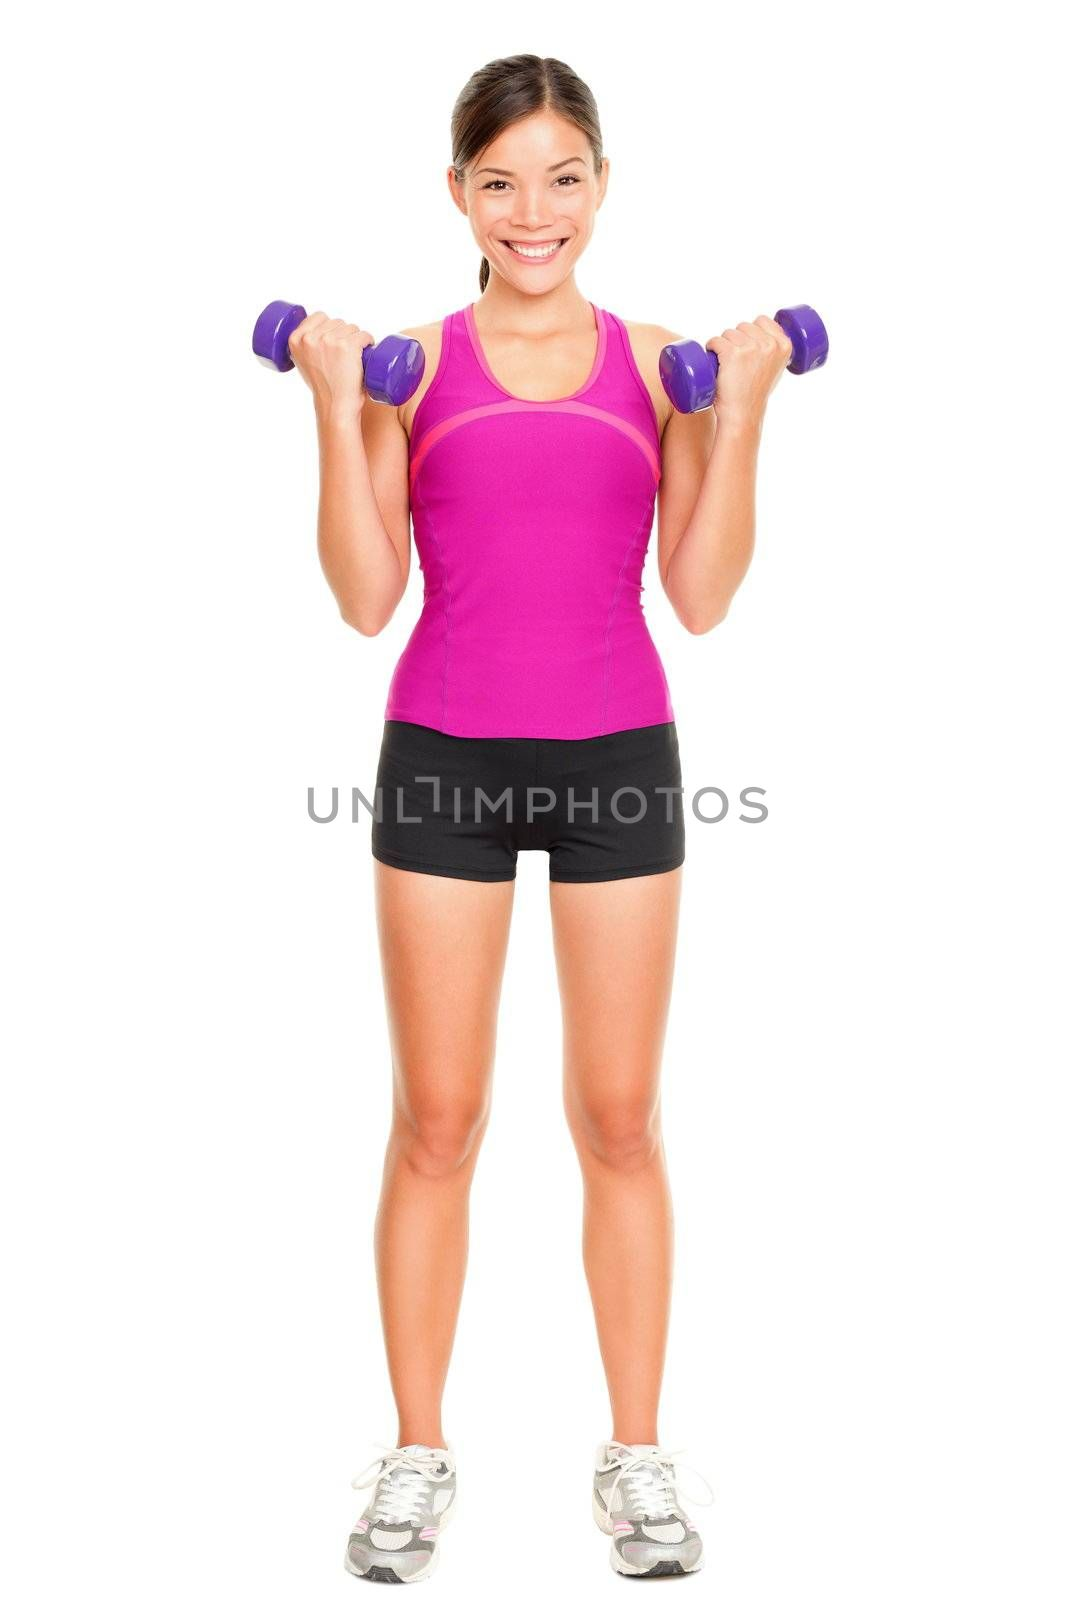 Sport fitness woman standing in full body. Fitness instructor standing holding dumbbell hand weights isolated in full body on white background in studio. Beautiful young mixed race Asian Caucasian female fitness model.